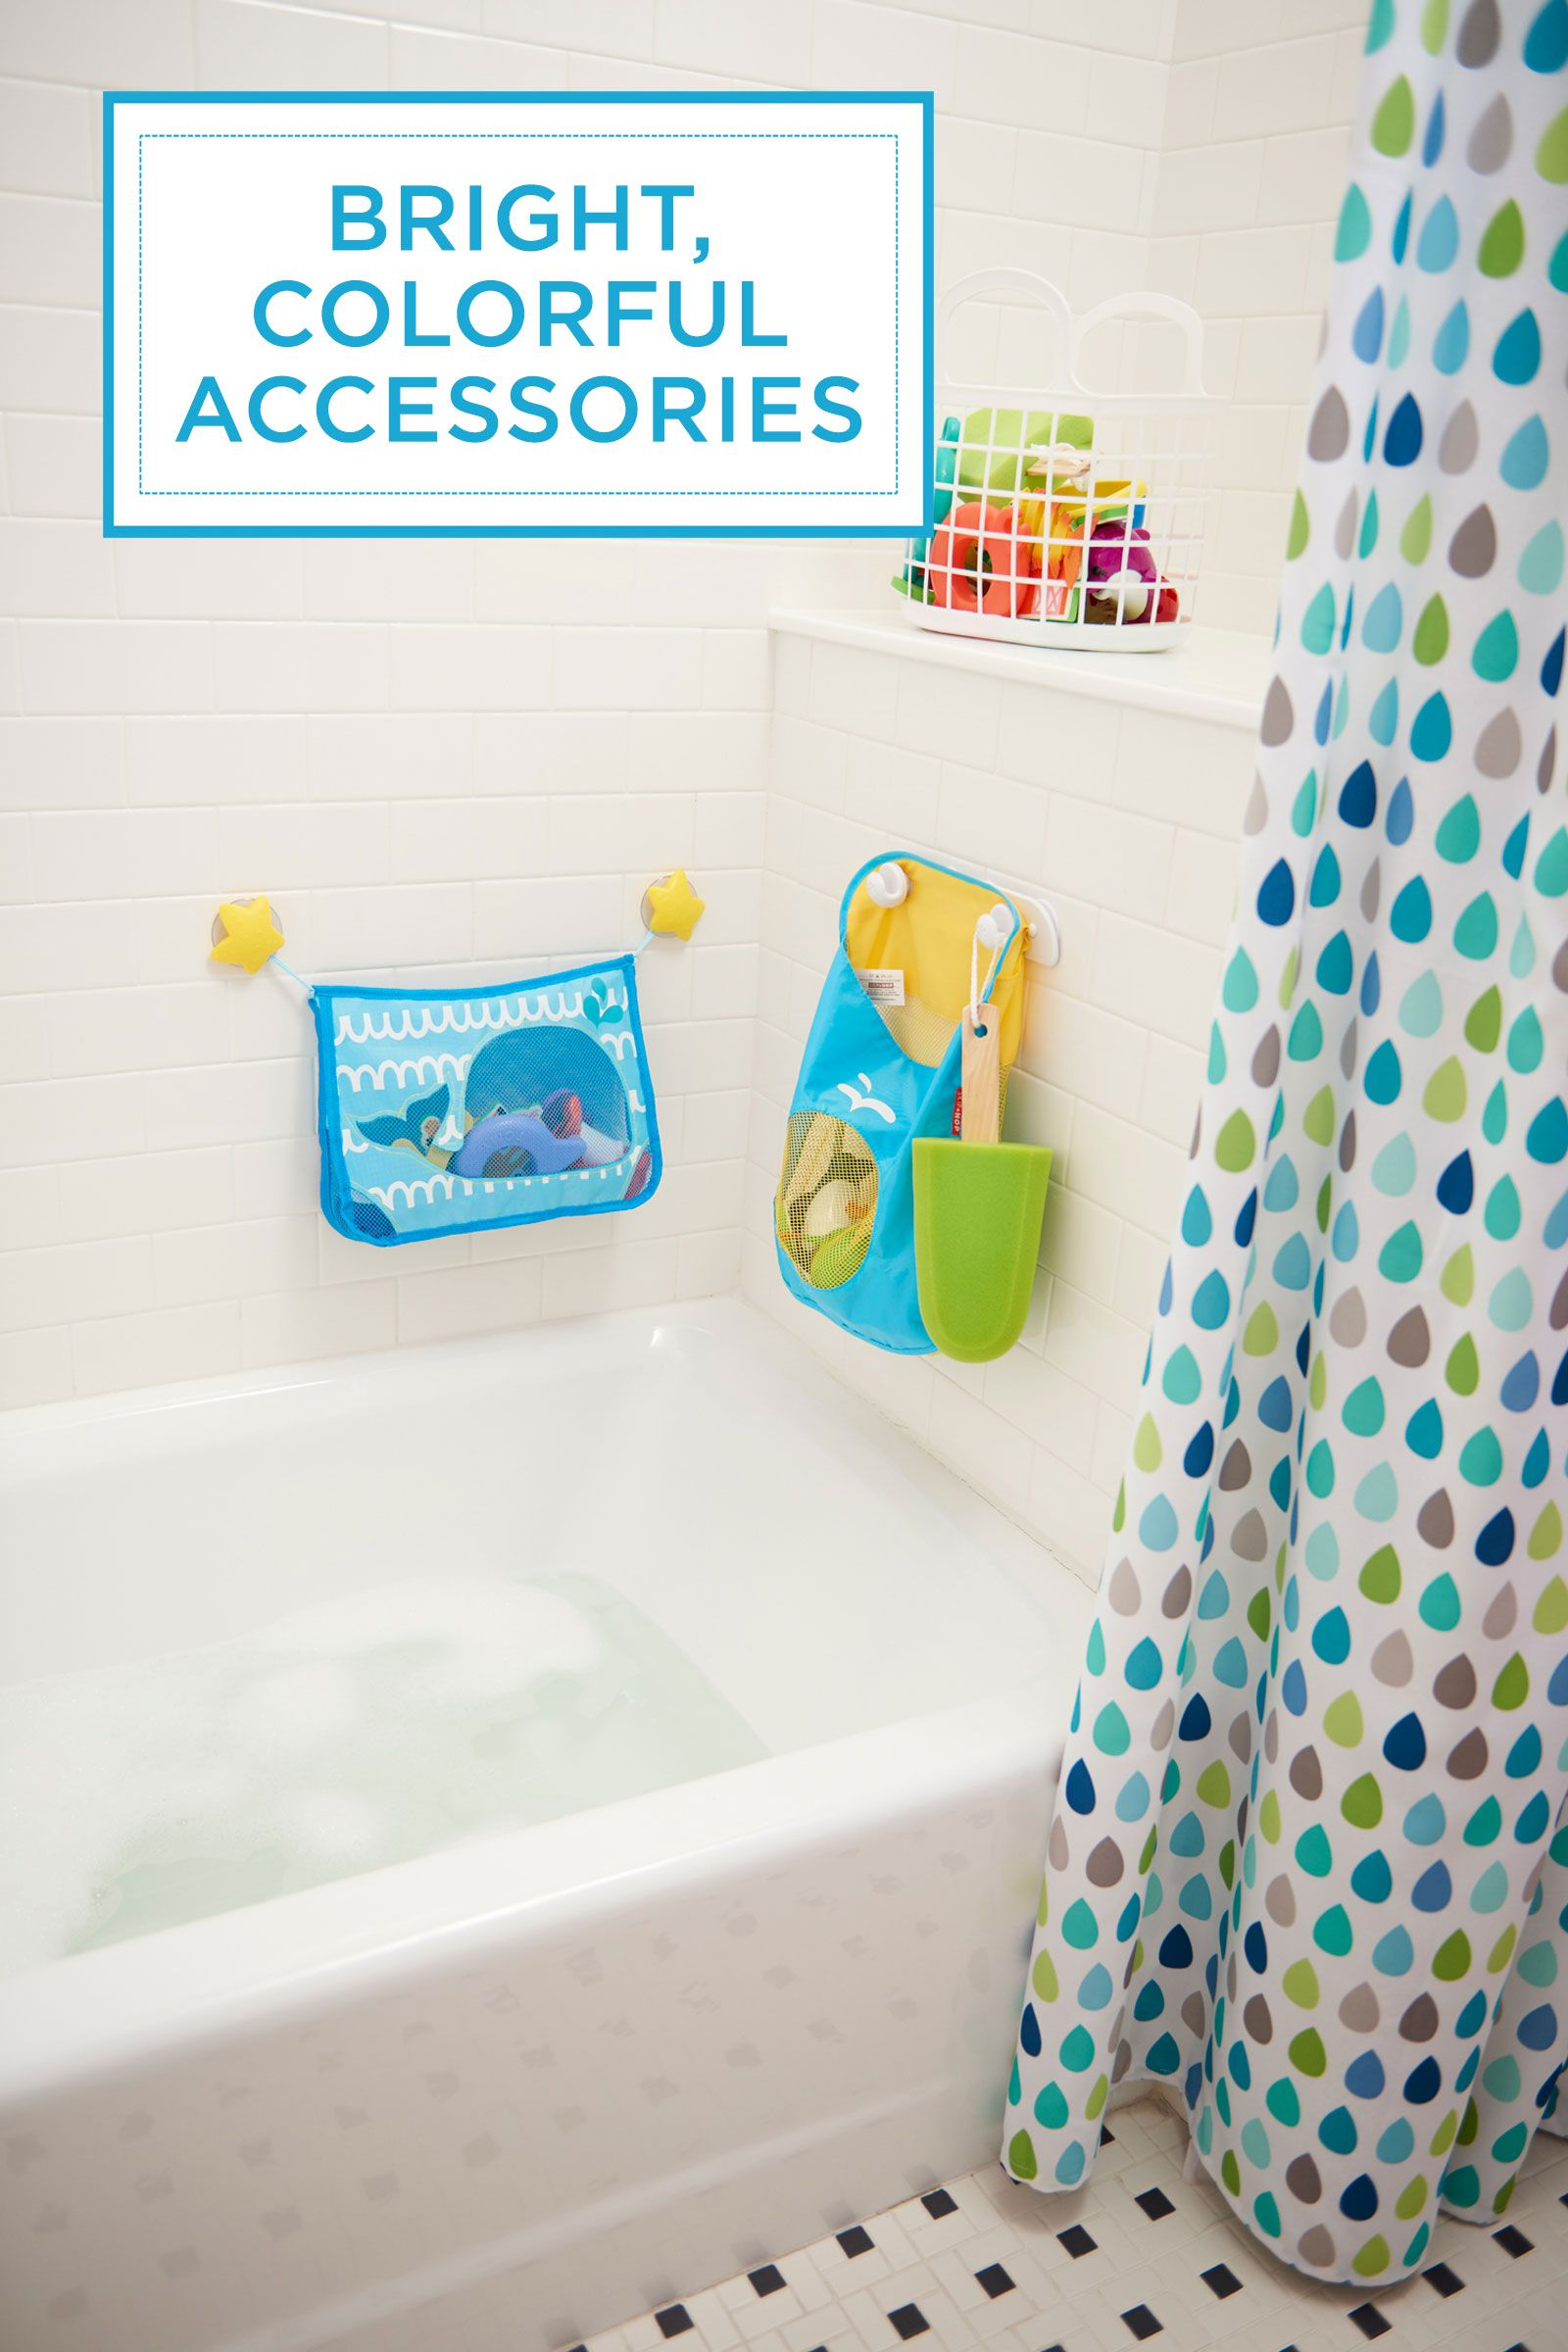 """<p>Proof in the power of accessories: A vibrant, patterned shower curtain ties together that hodgepodge of primary-hued tub toys. Why shouldn't bath time be fun? </p><p><em>Shower curtain, <a href=""""http://www.target.com/p/circo-cool-raindrops-shower-curtain/-/A-14767645#prodSlot=medium_1_1&term=raindrop+shower+curtain"""" target=""""_blank"""">Target.com</a>&#x3B; bath toy organizer and bag, <a href=""""http://www.toysrus.com/"""" target=""""_blank"""">ToysRUs.com</a></em><br></p>"""